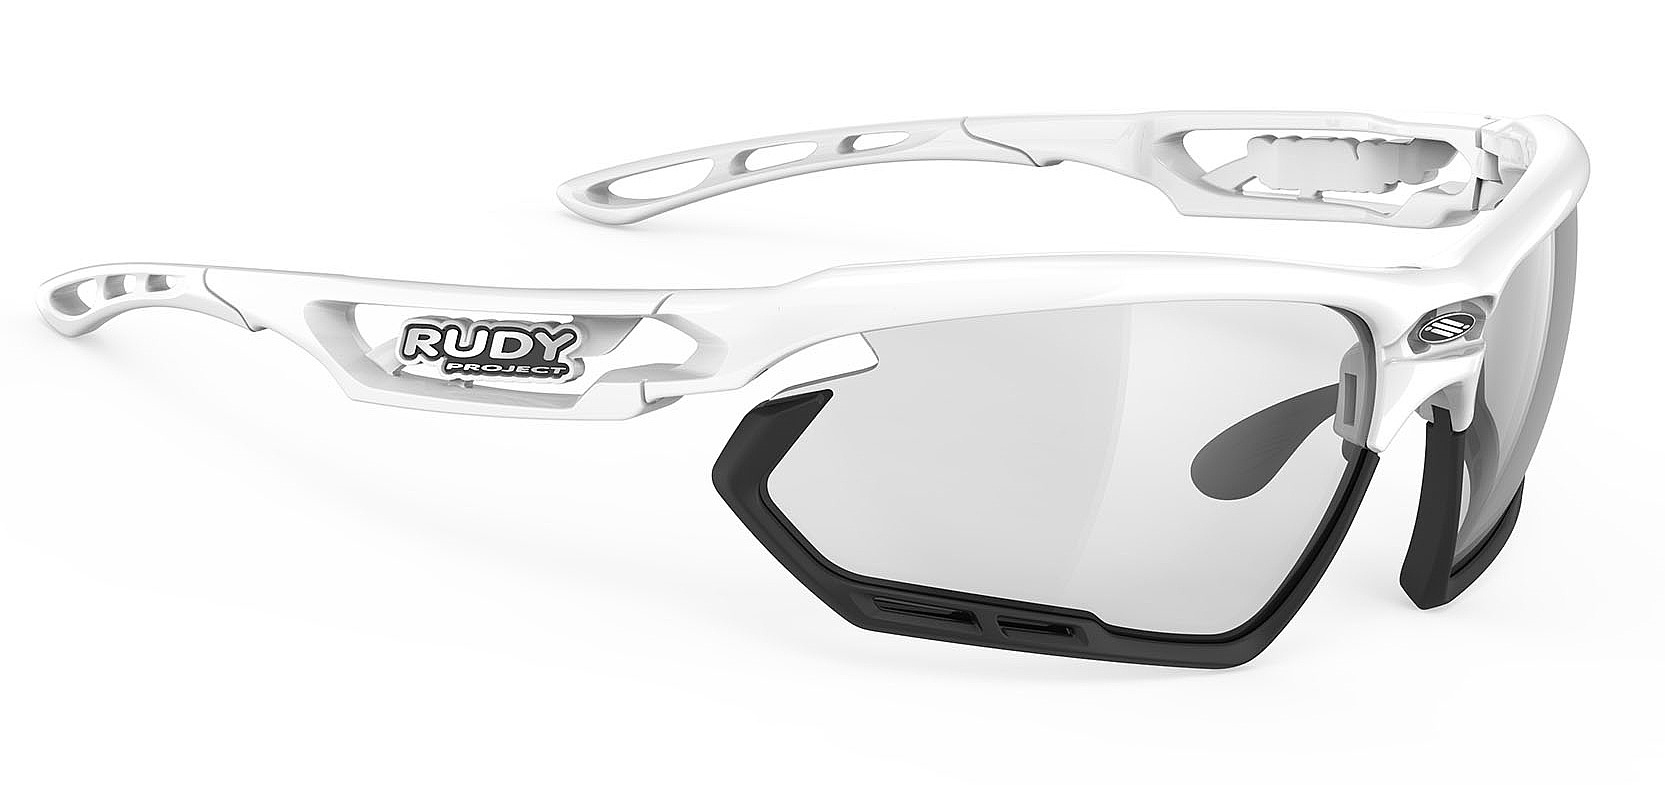 brýle Rudy Project Fotonyk - White Gloss/Black Bumbers/ImpactX 2 Black one size